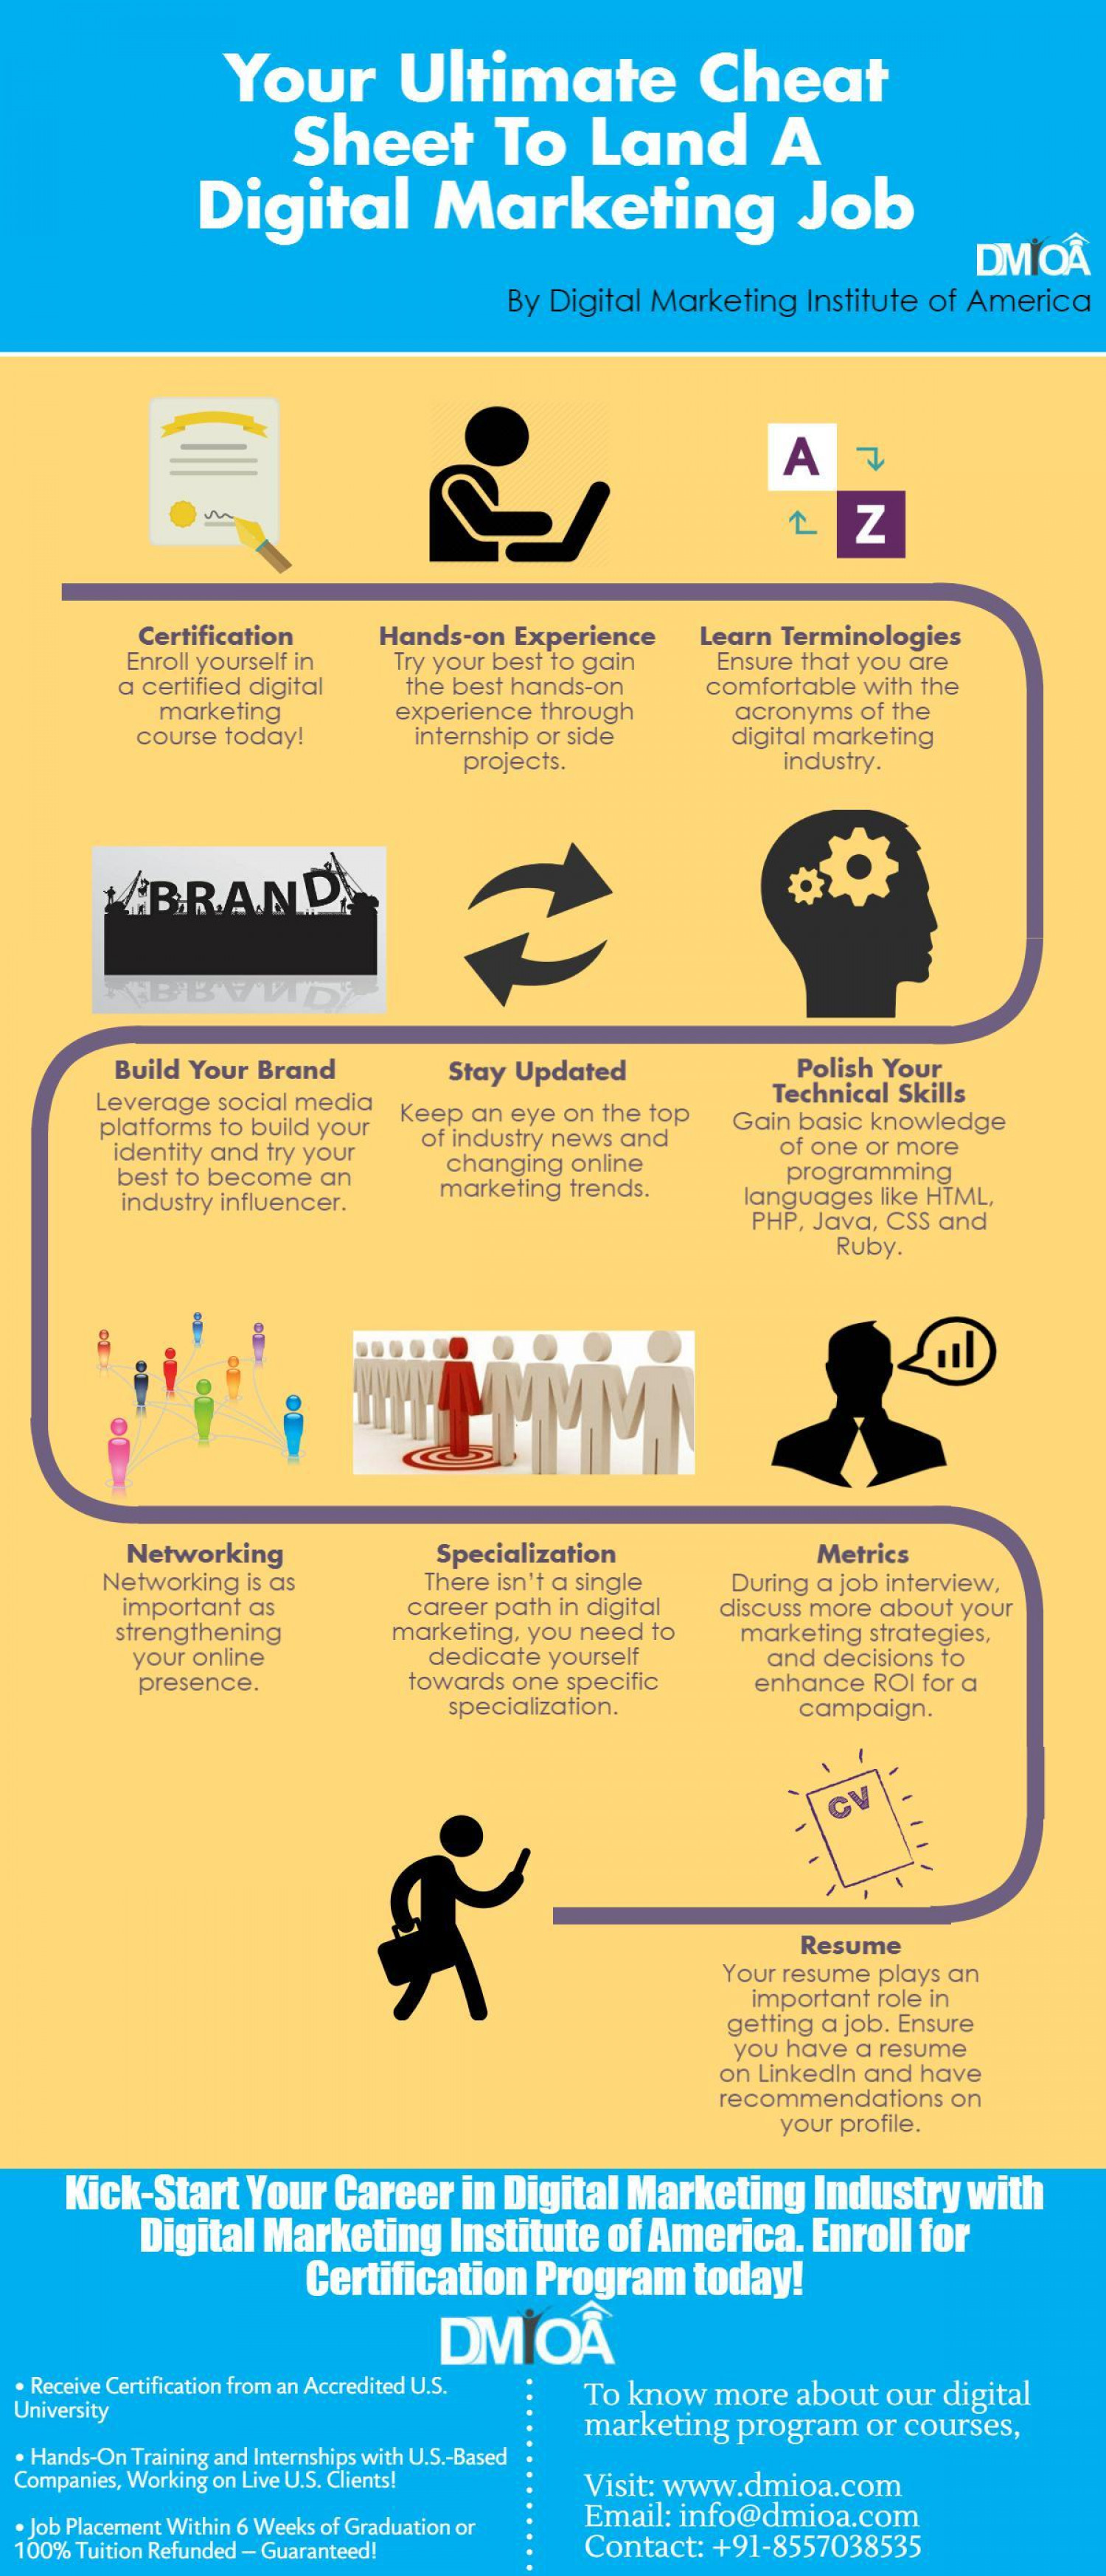 Your Ultimate Cheat Sheet To Land A Digital Marketing Job Infographic